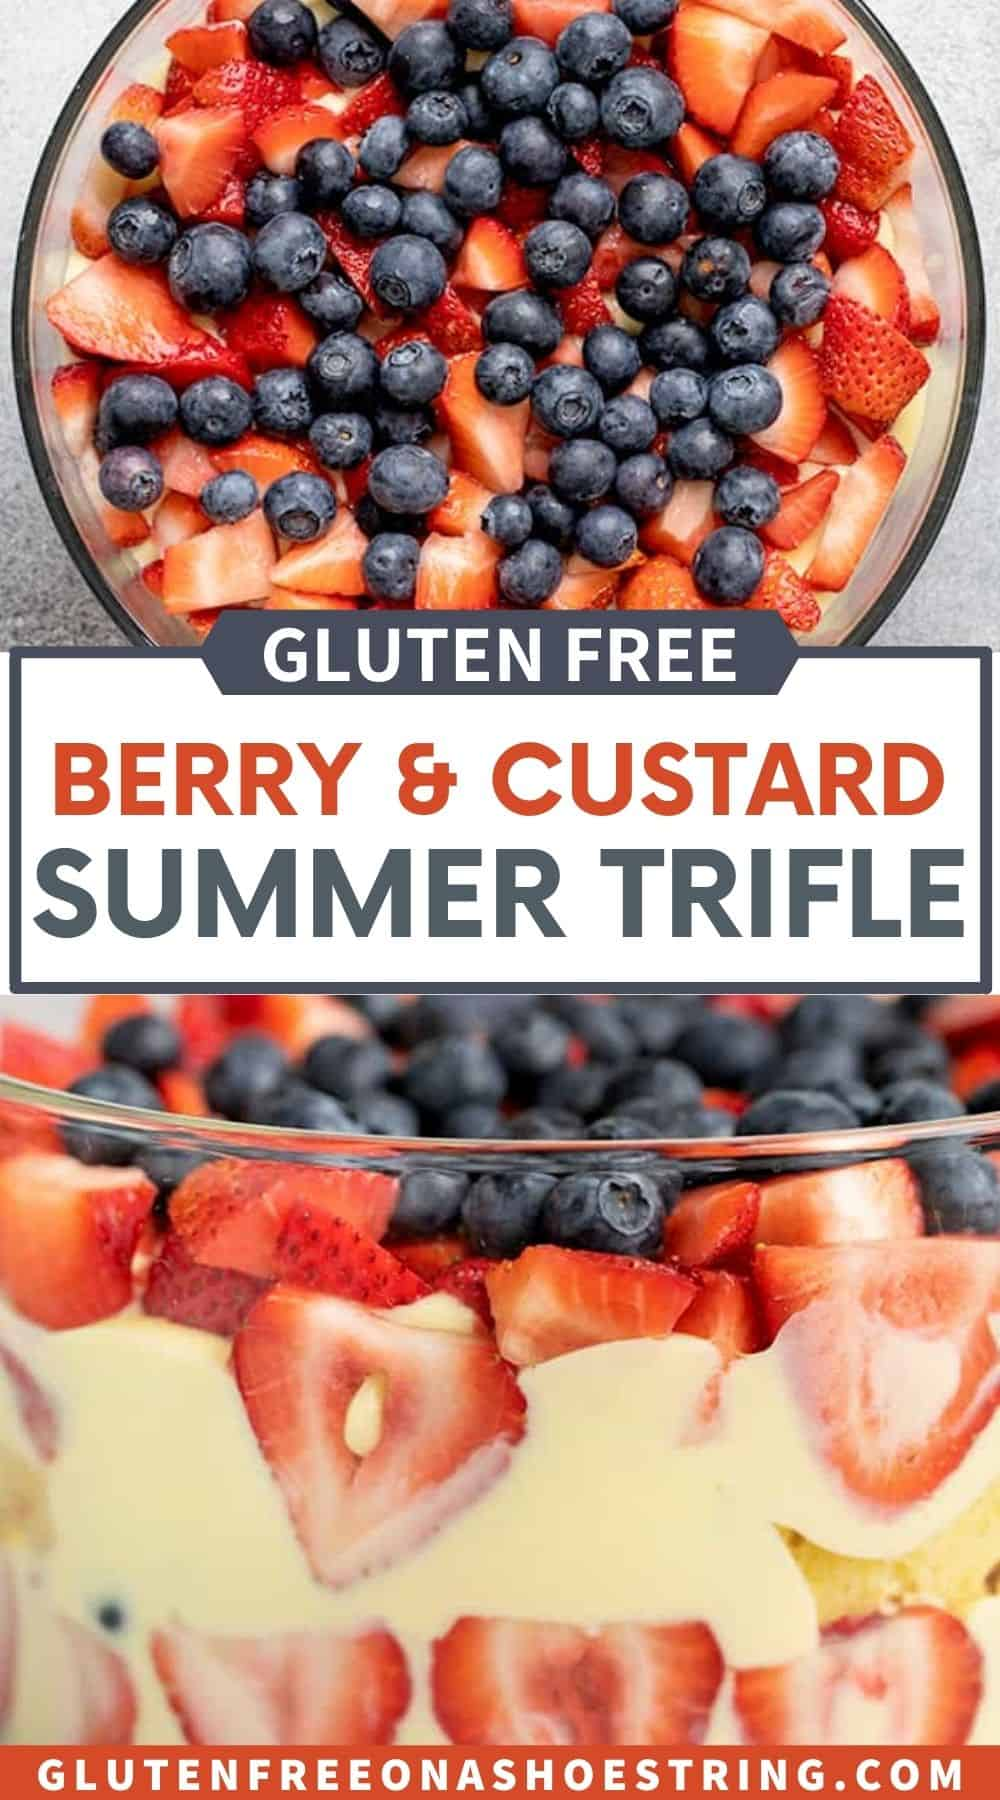 Words gluten free berry and custard summer trifle on images of berries in glass bowl and side image of custard and berries in glass bowl